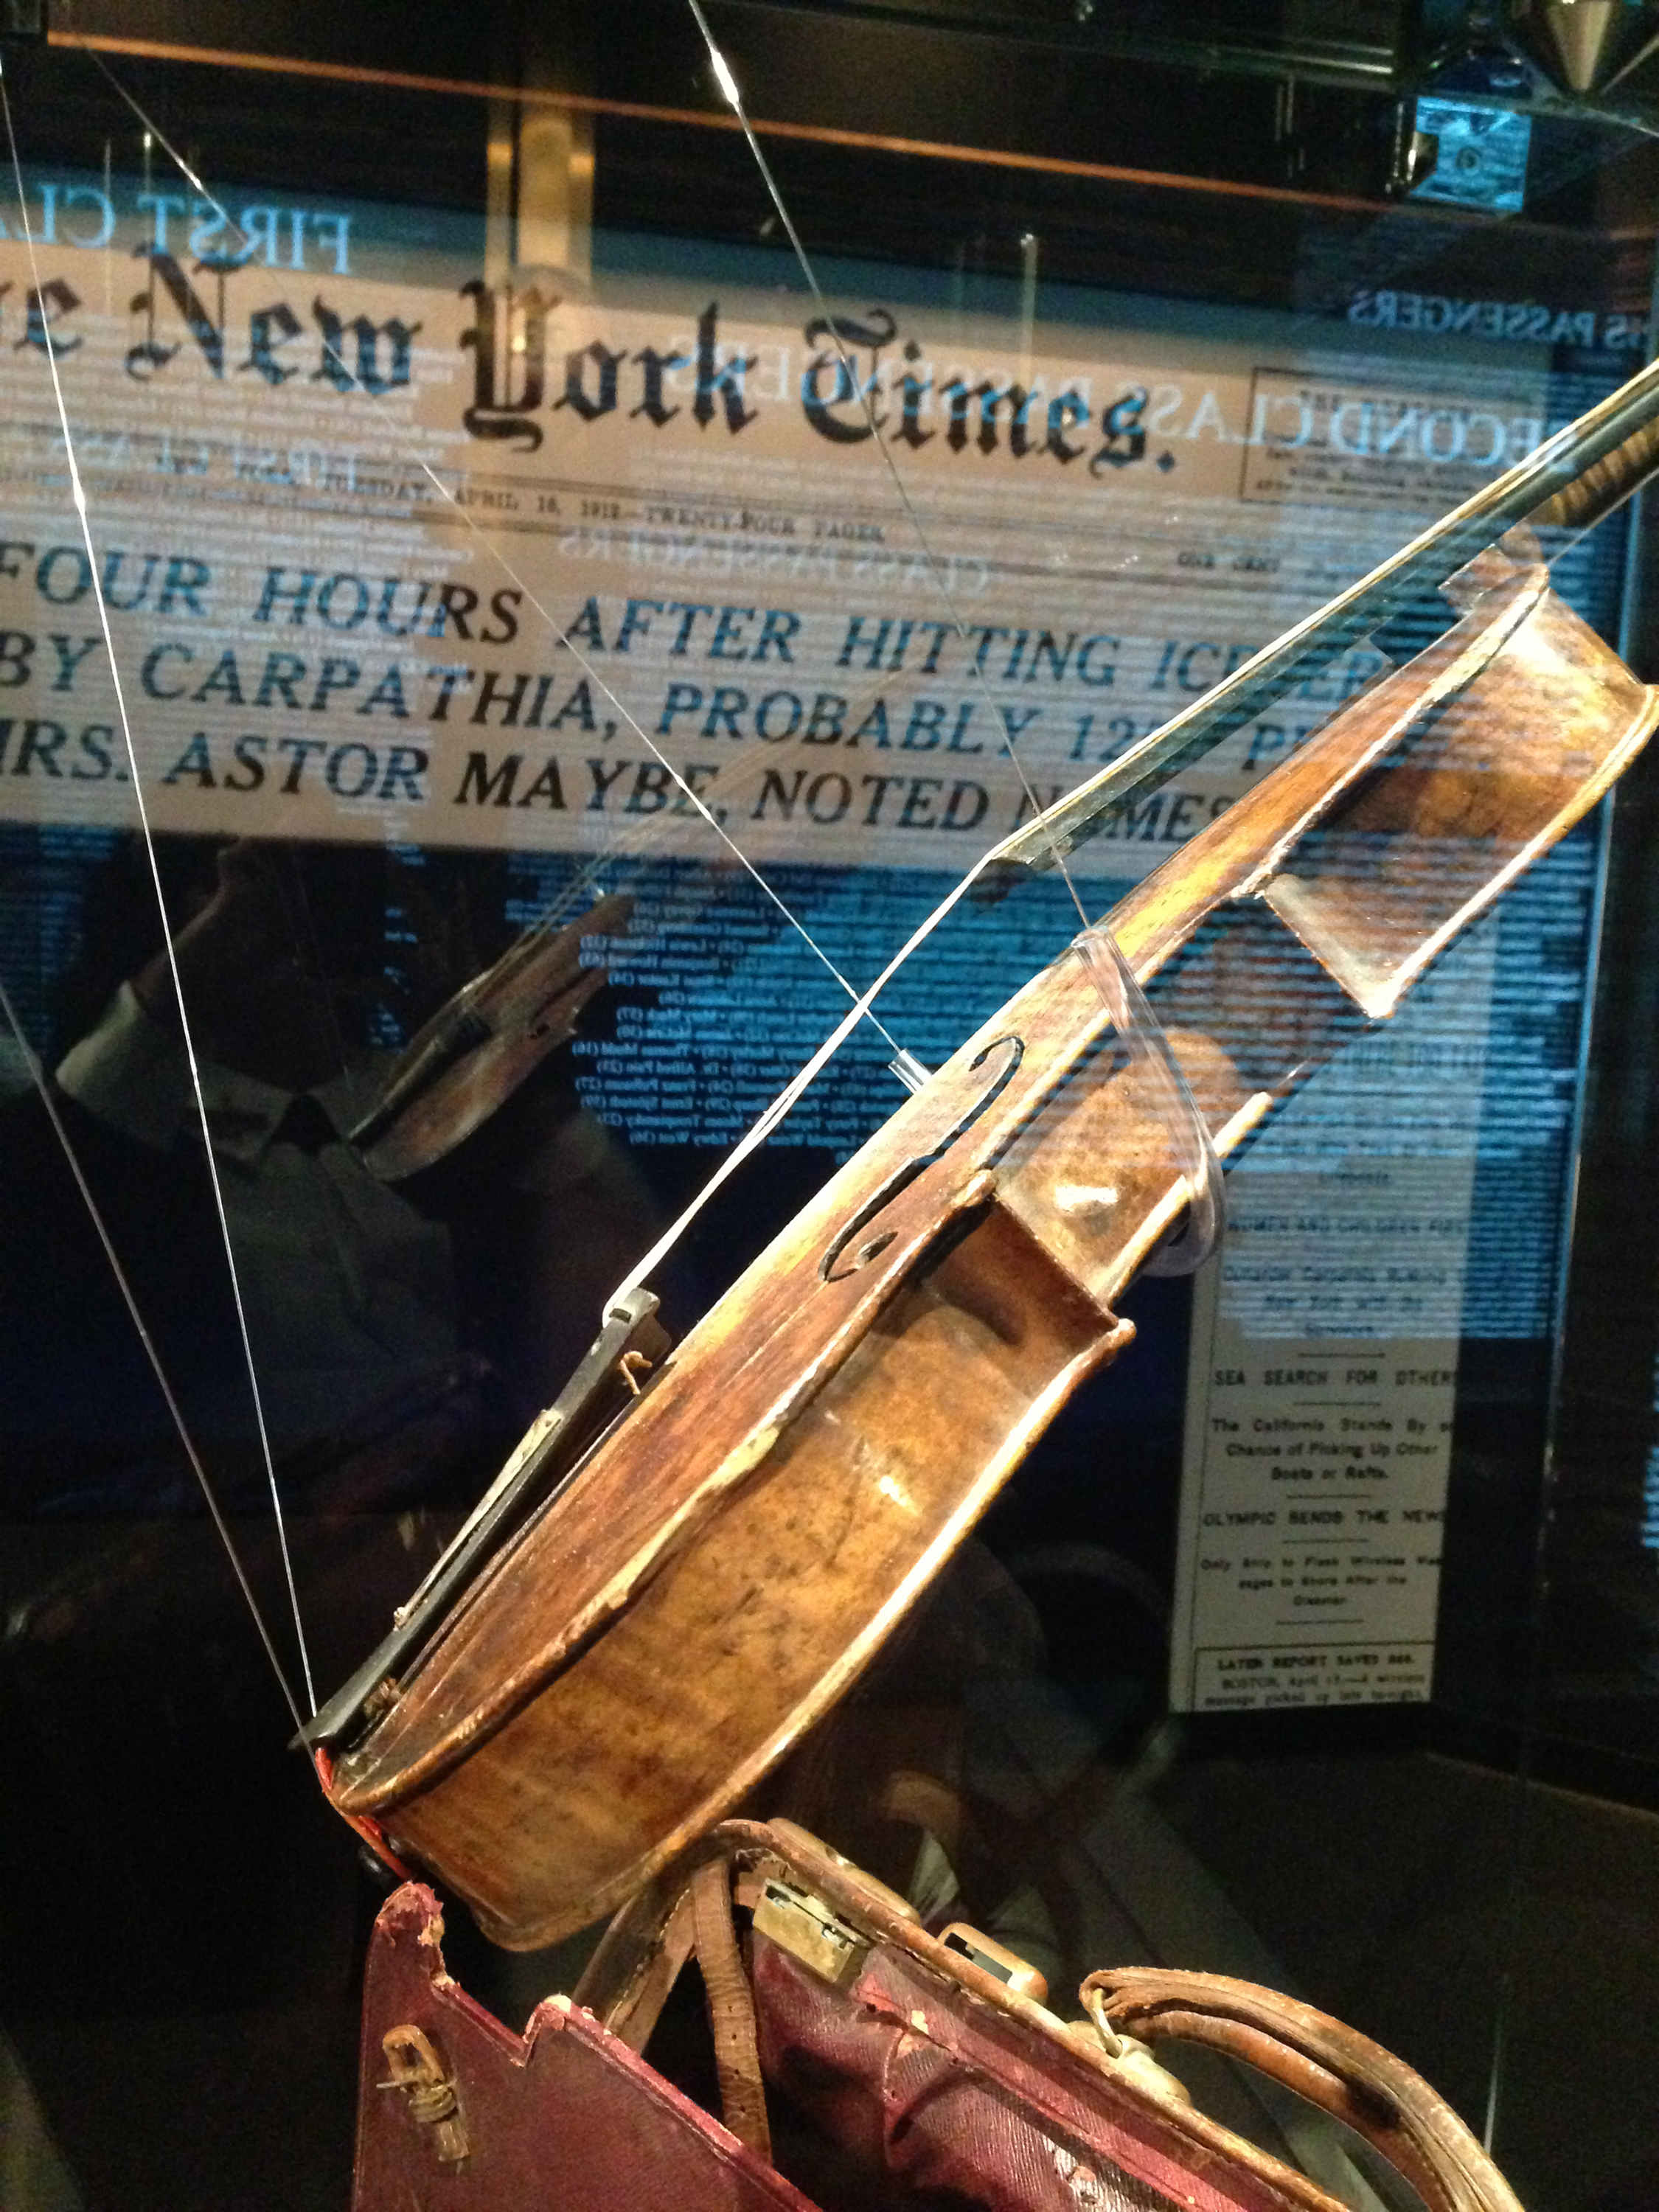 http://www.titanicpigeonforge.com/wp-content/uploads/2015/07/titanic-wallace-hartley-violin021.jpg